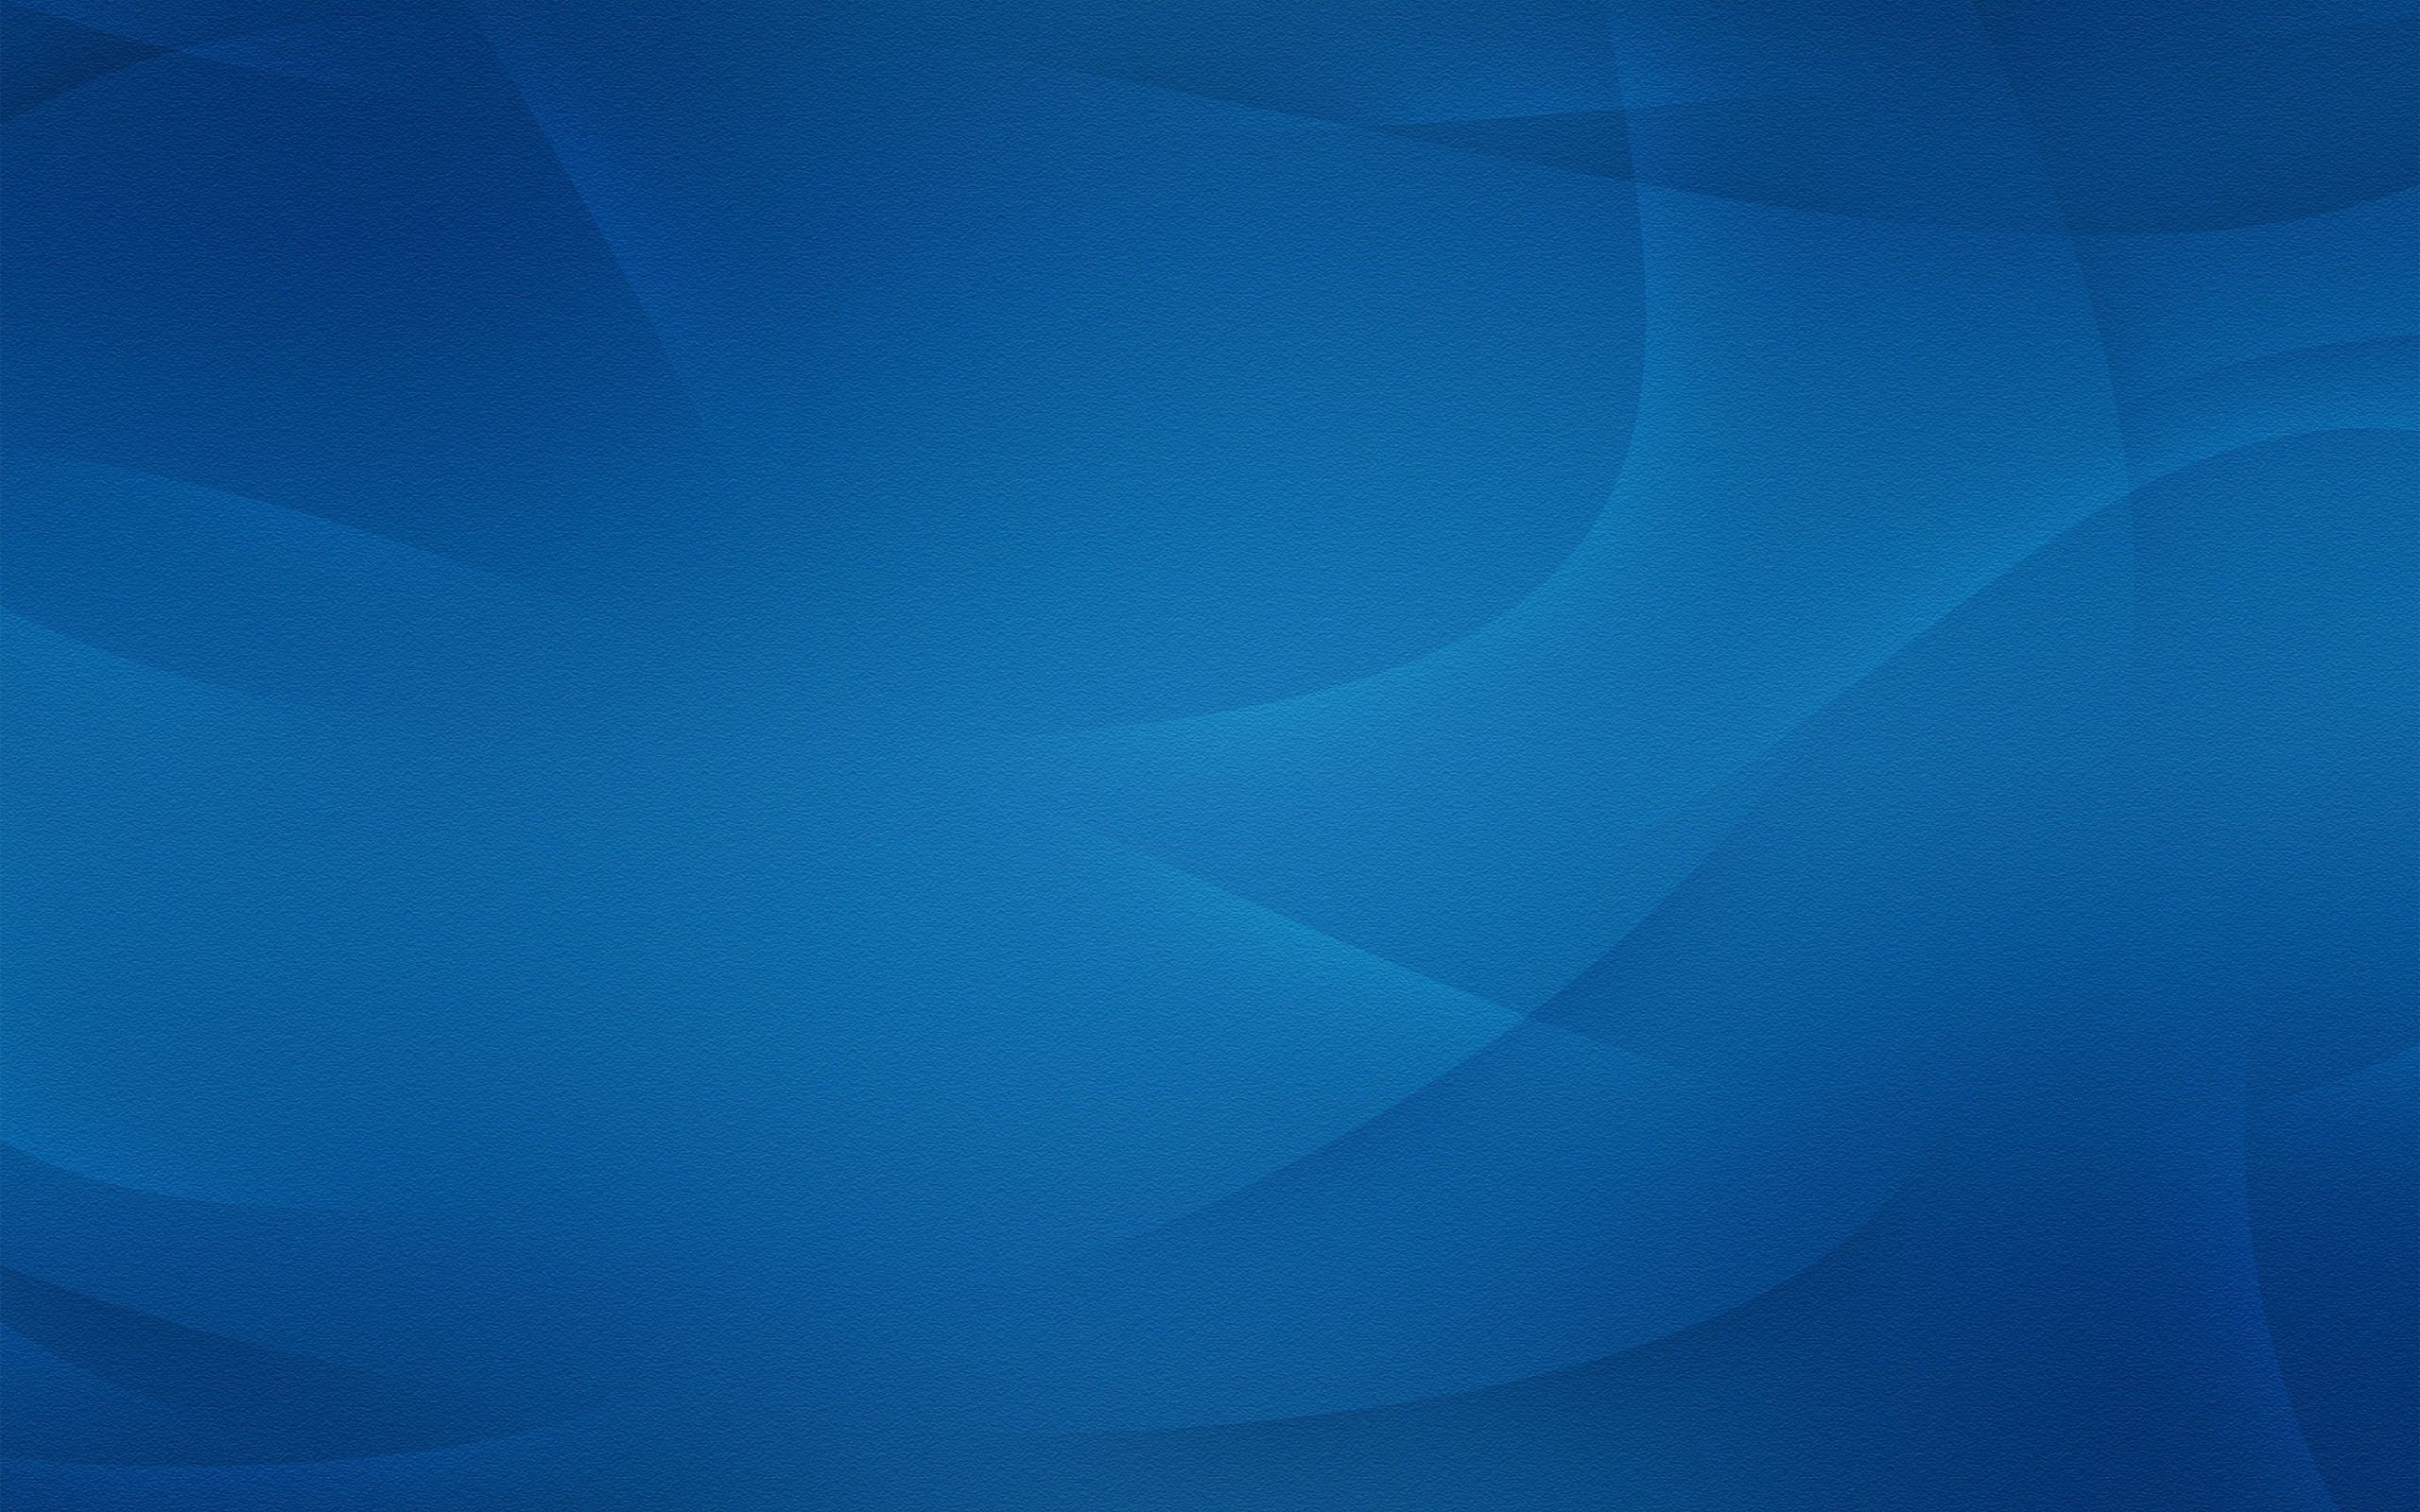 2560x1600 Blue Abstract Wallpaper for PC